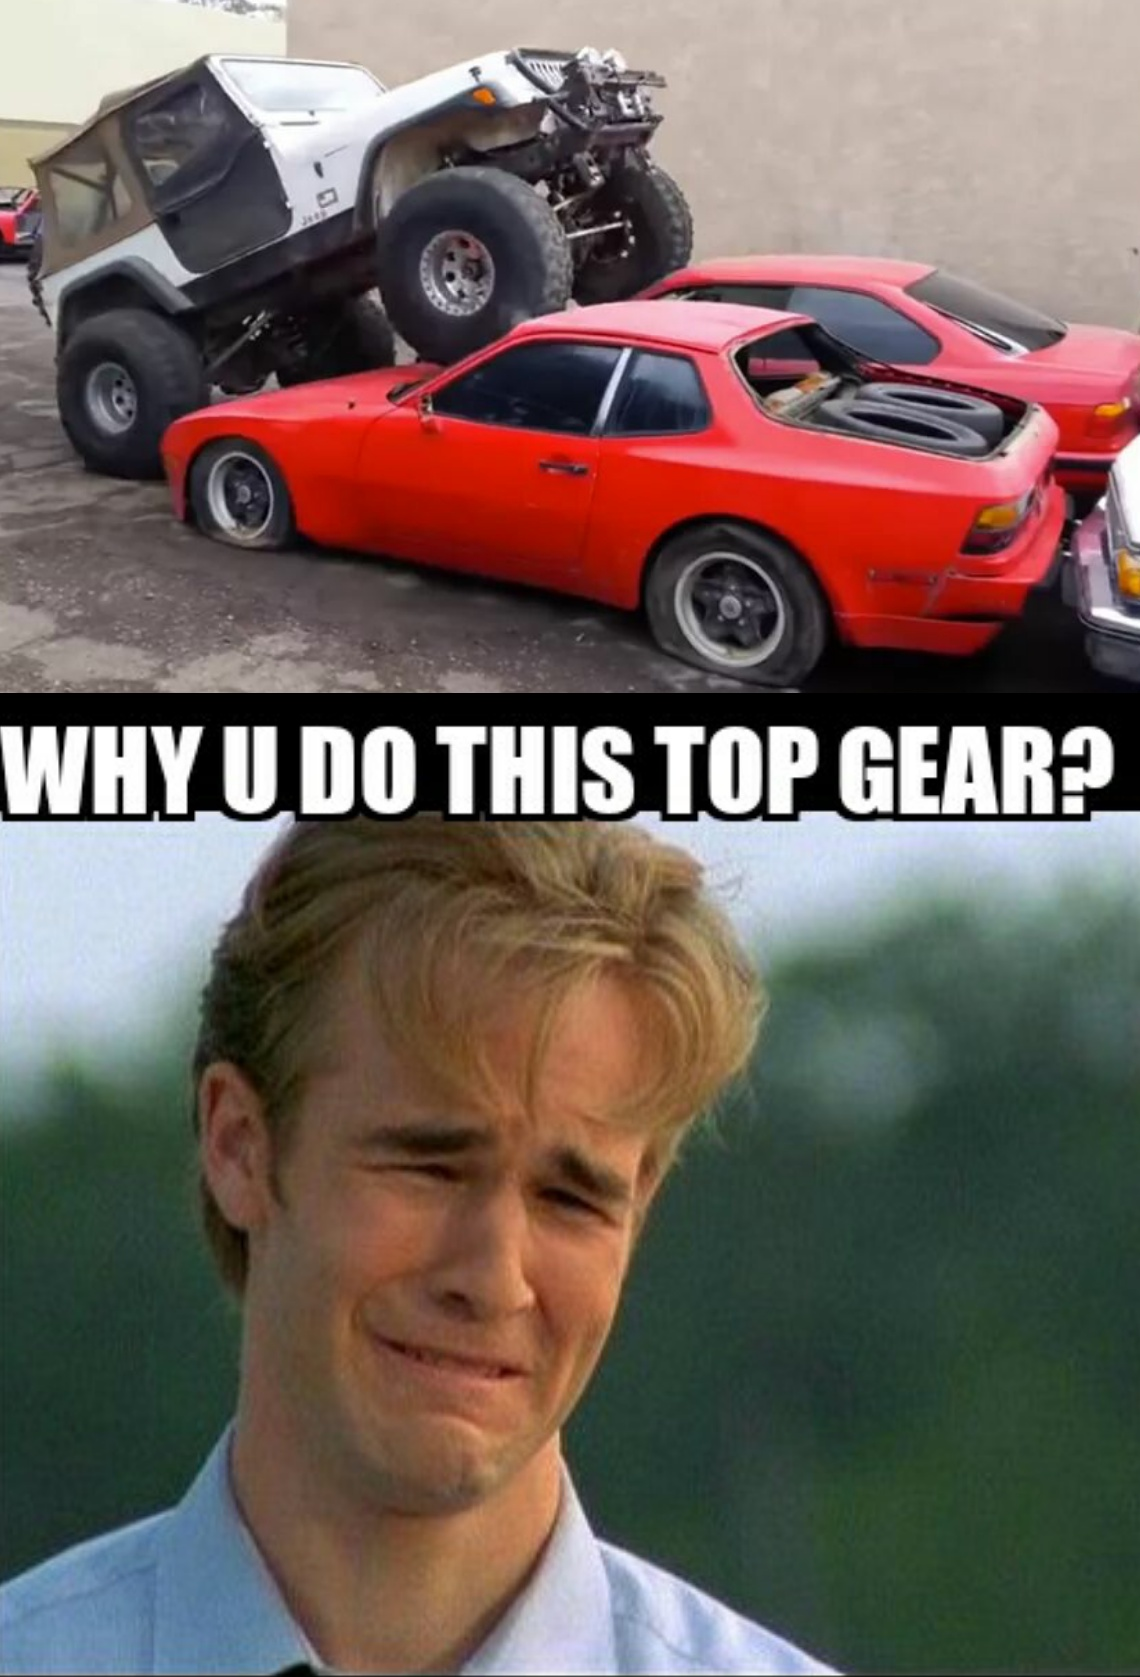 why u do this top gear